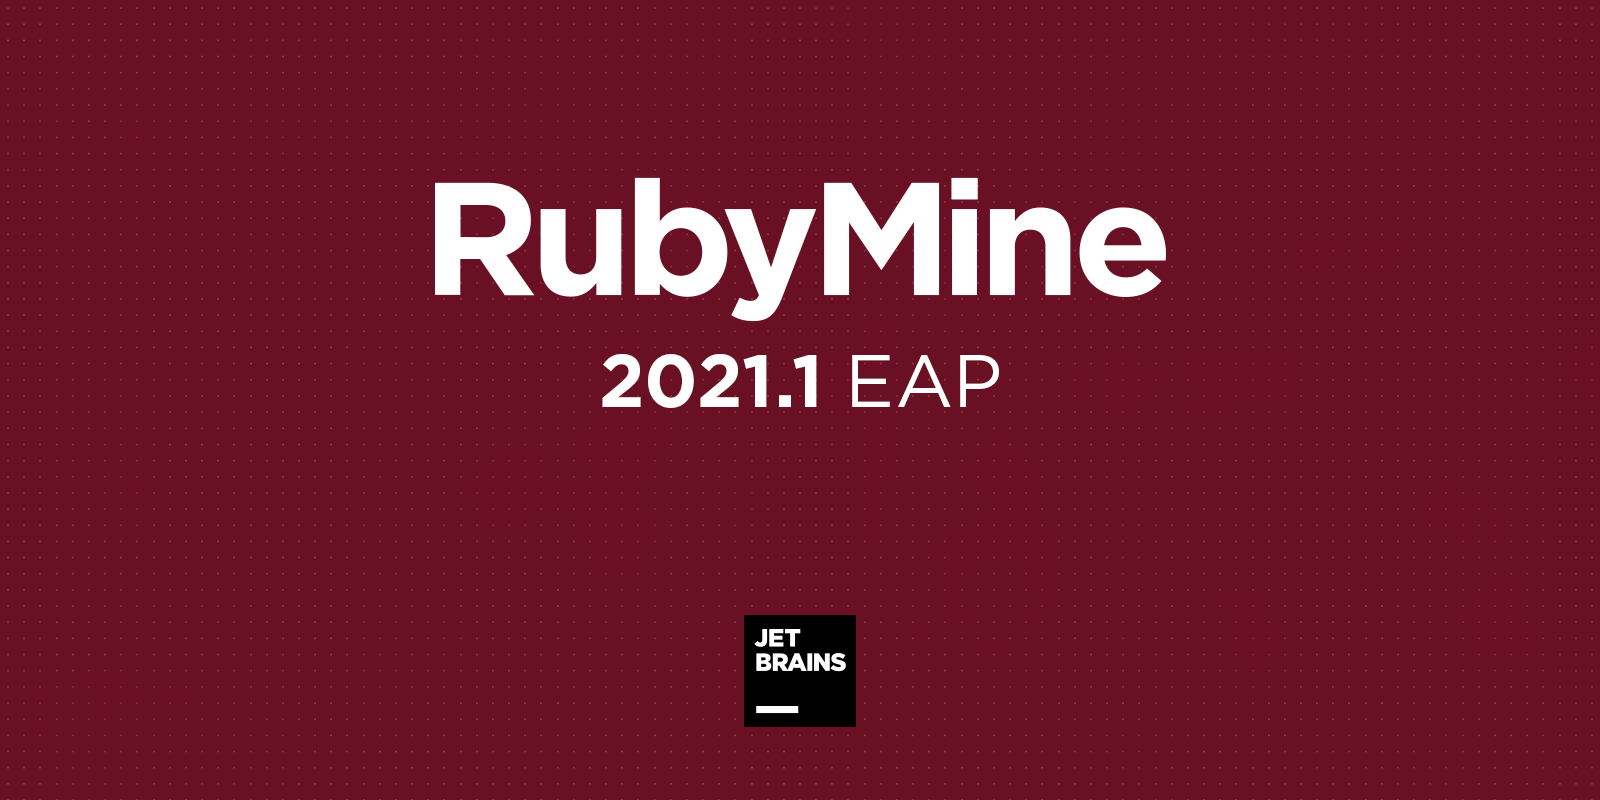 RubyMine 2021.1 EAP Is Open